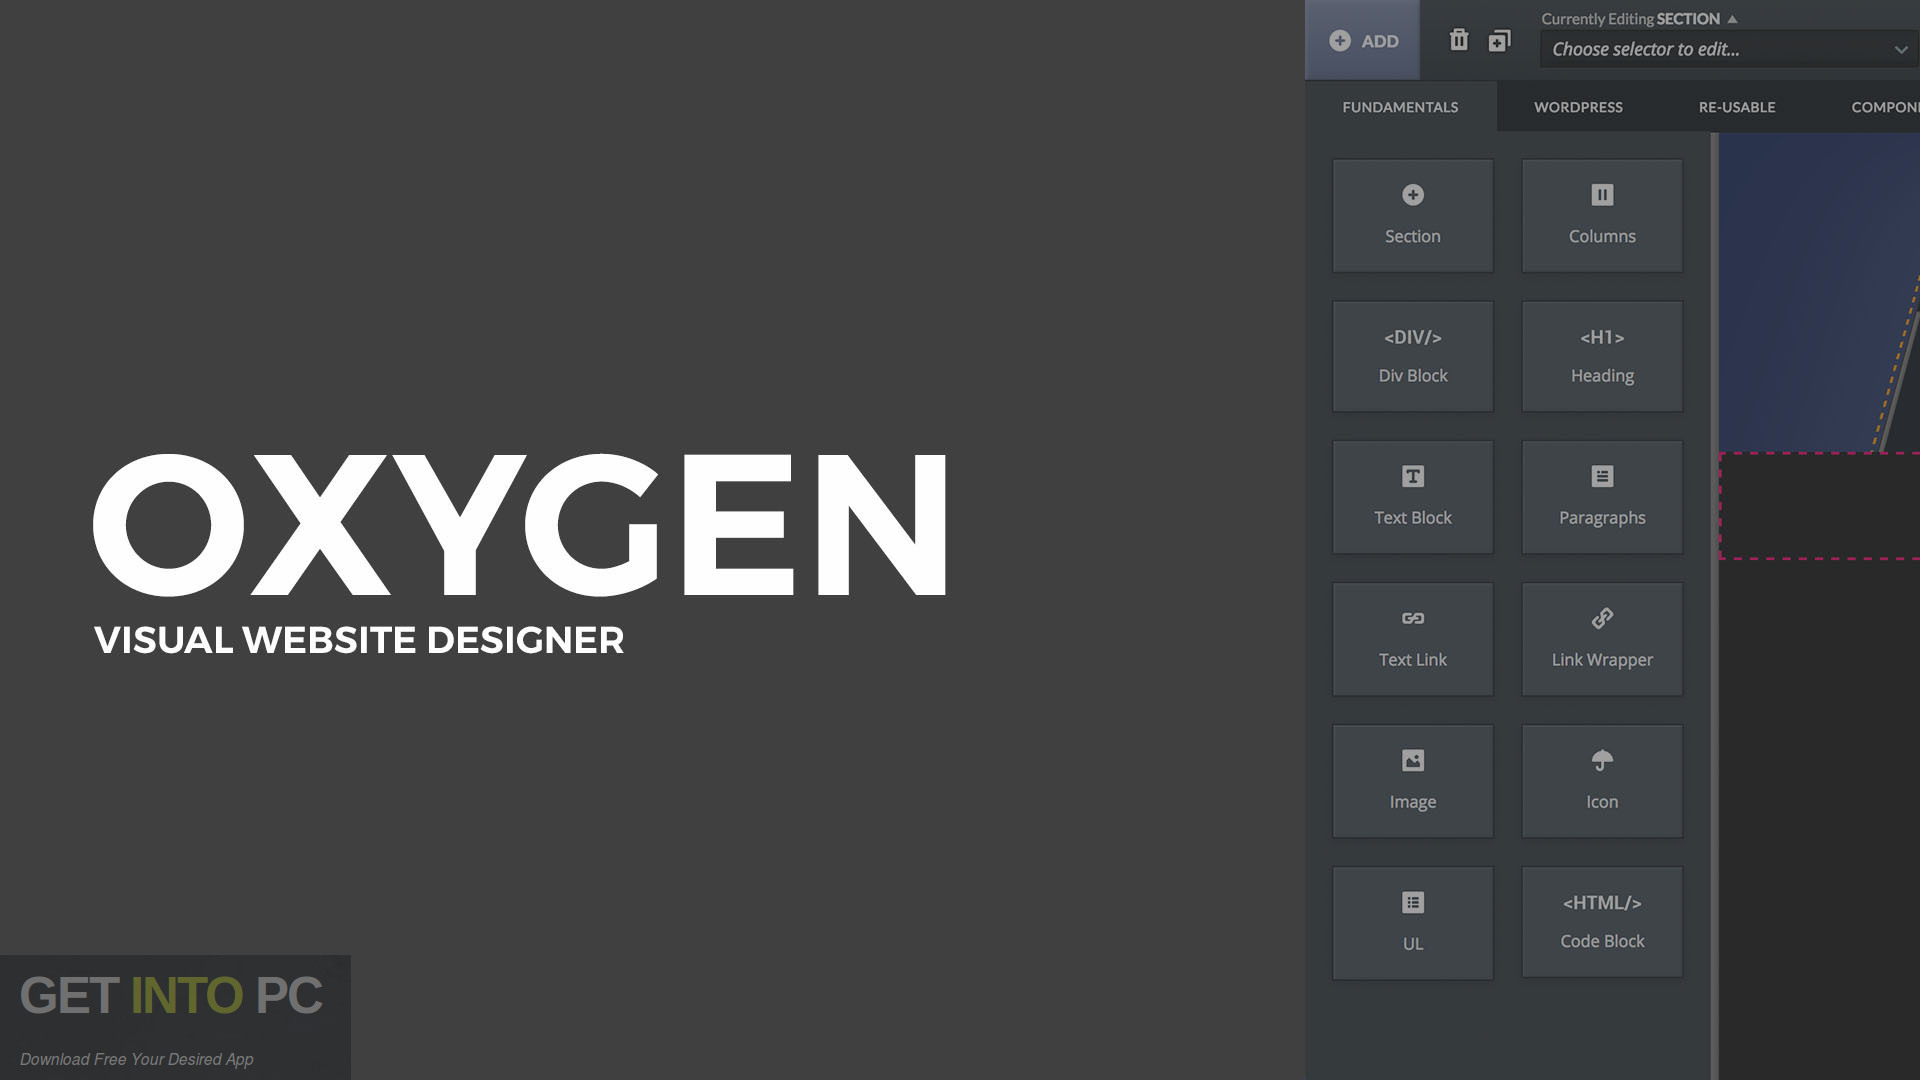 Oxygen WordPress Visual Site Builder Free Download-GetintoPC.com